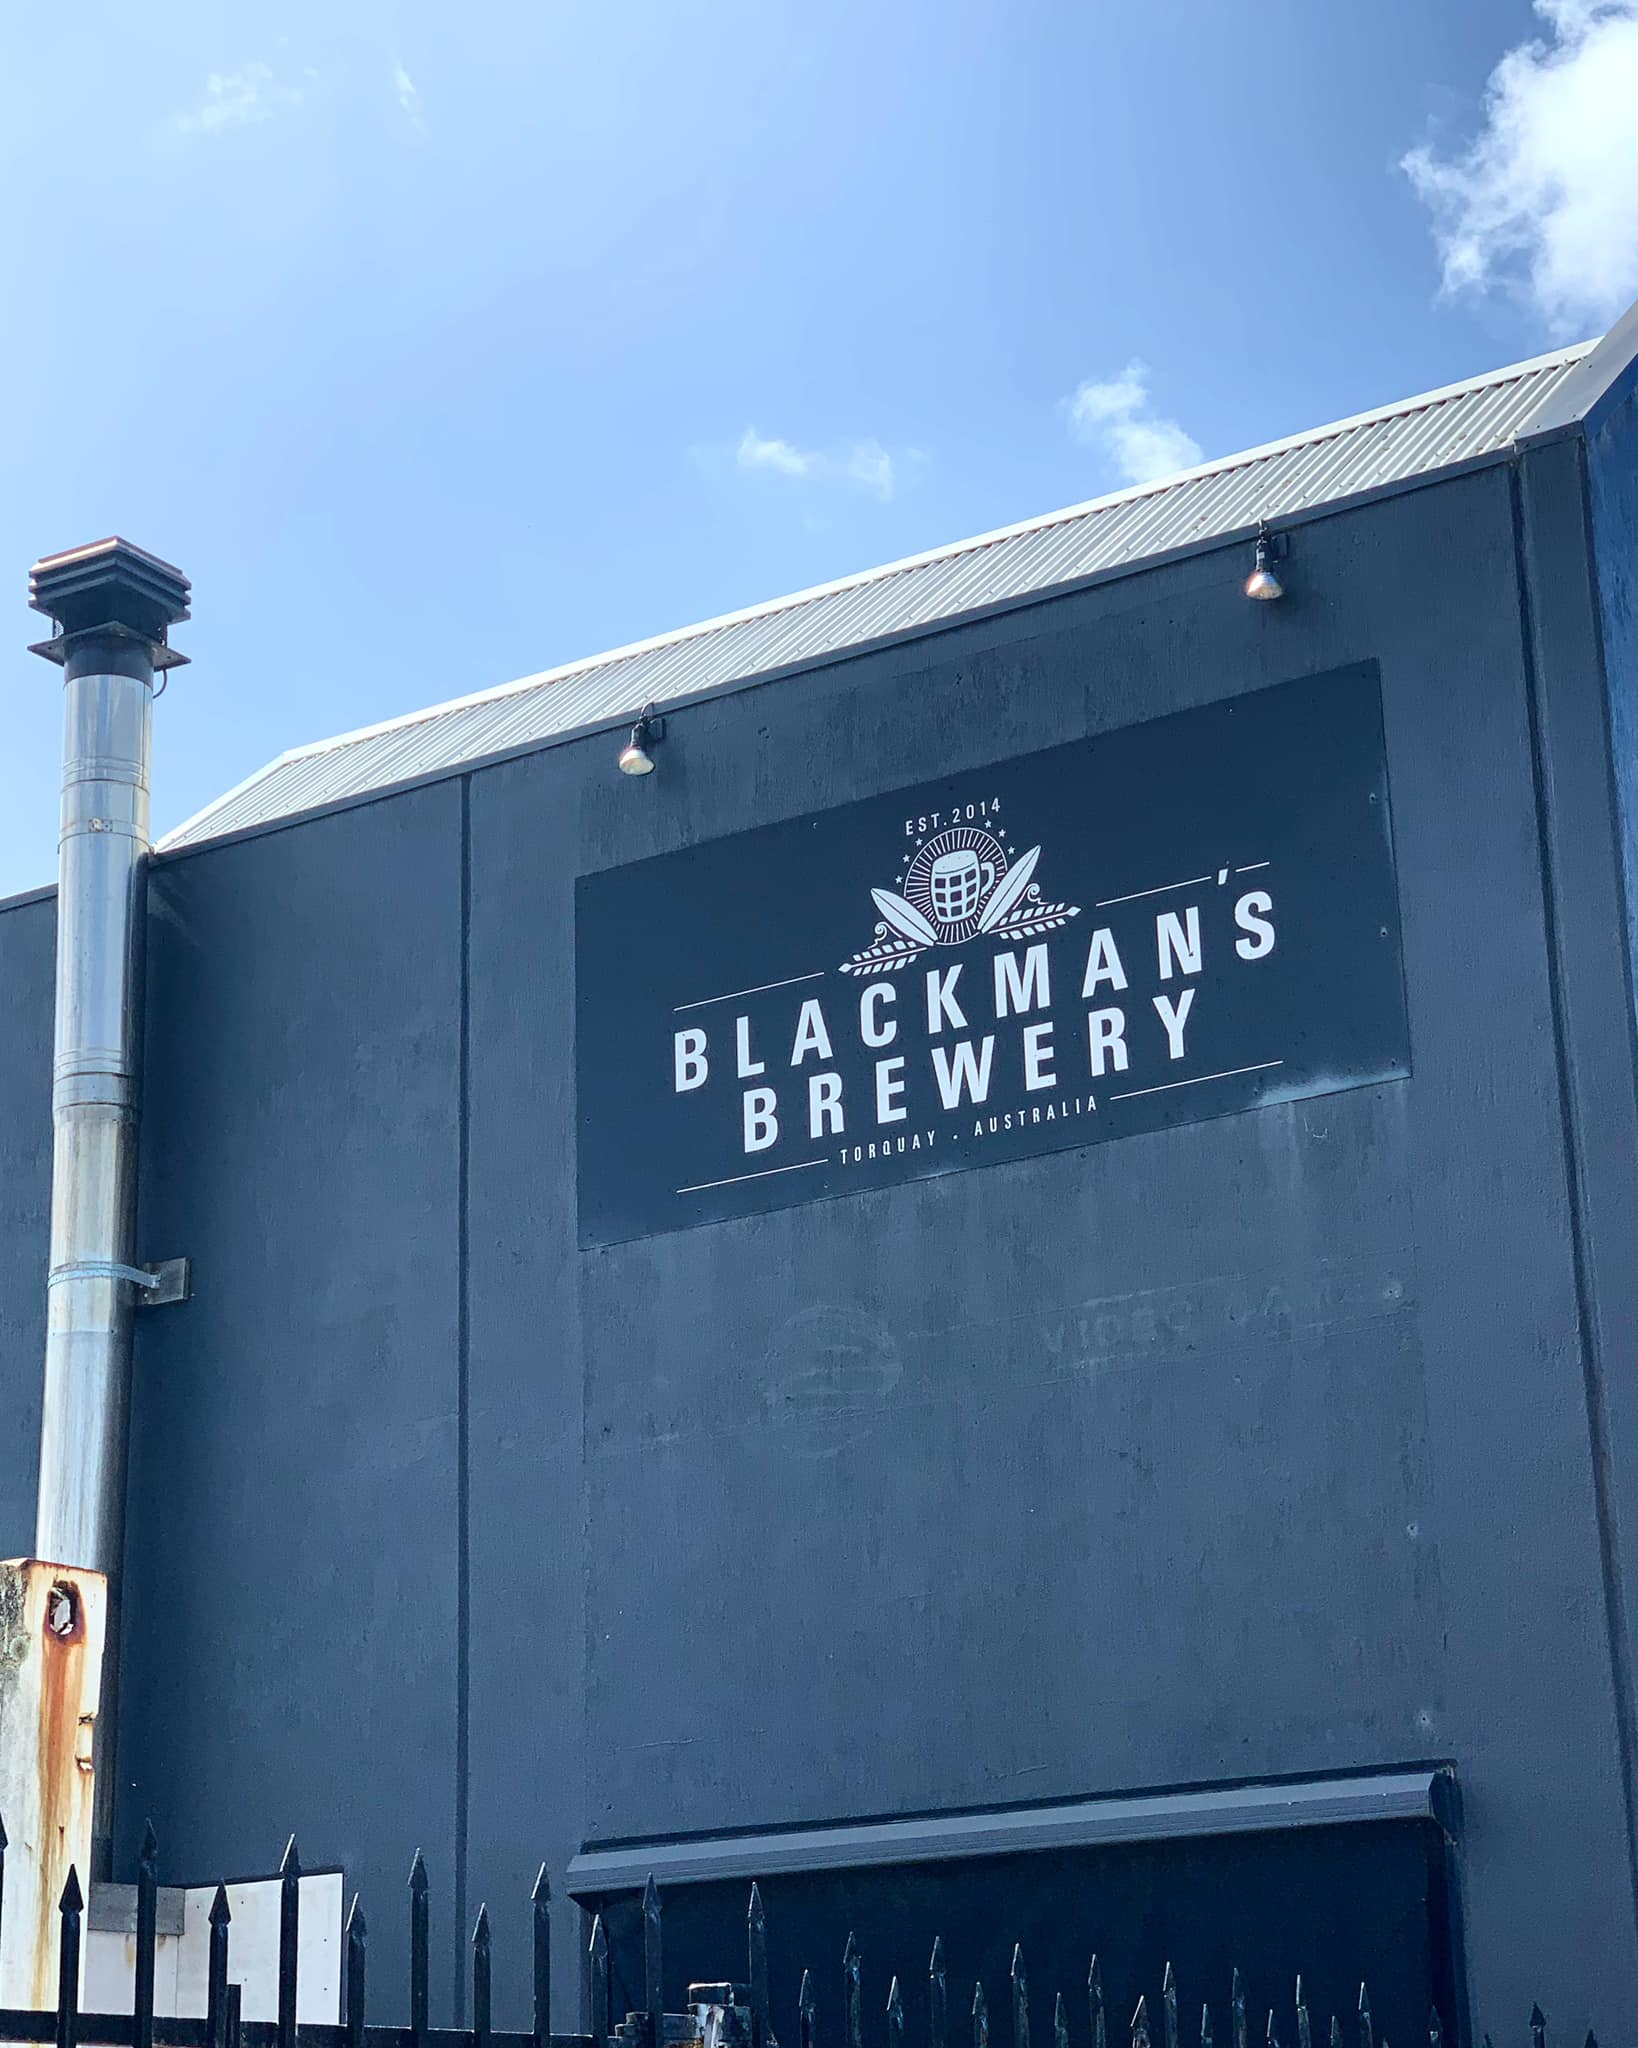 Blackman's Brewery Geelong